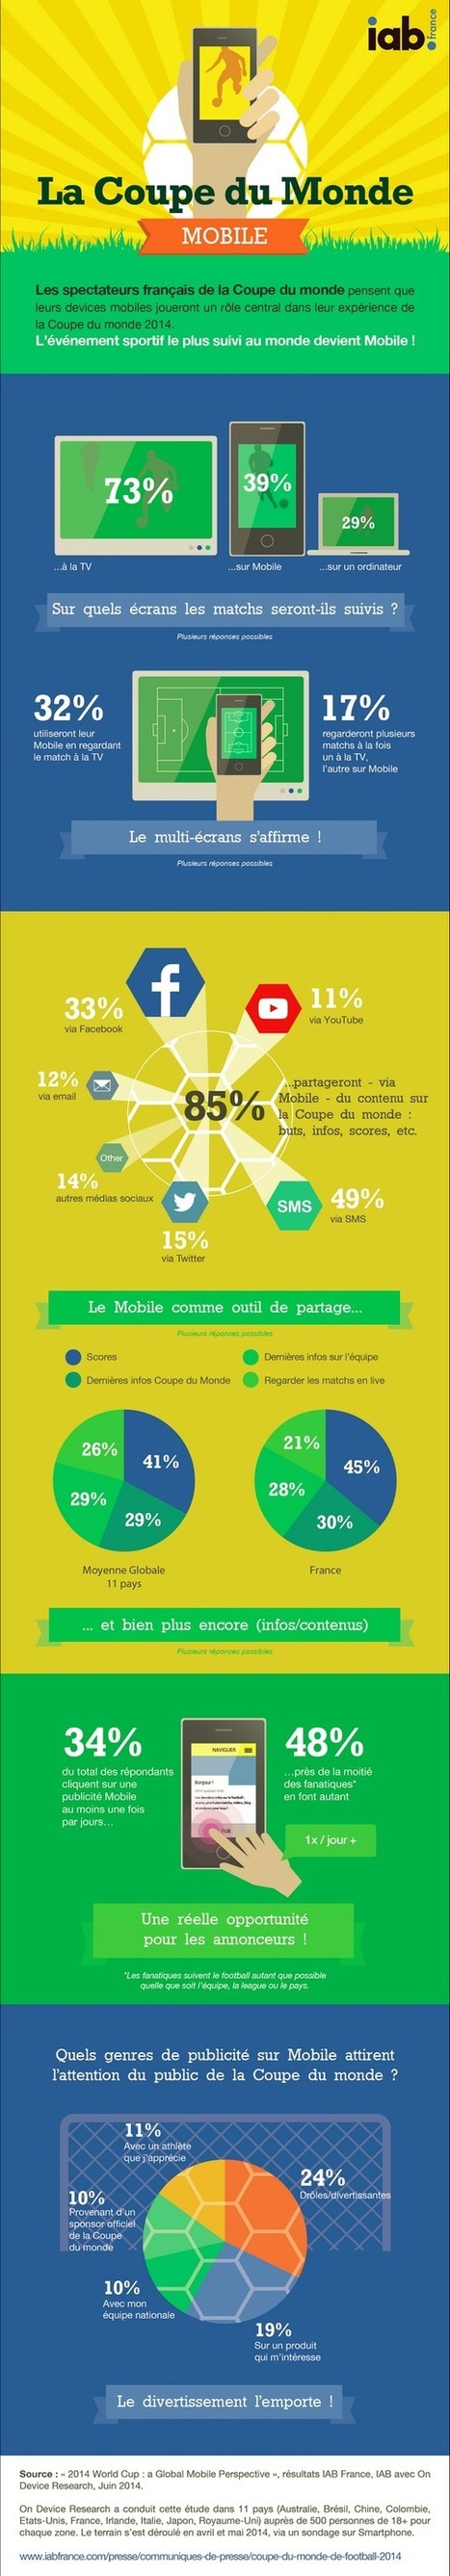 Infographie : comment est consommée la Coupe du monde sur mobile | Webmarketing | Scoop.it